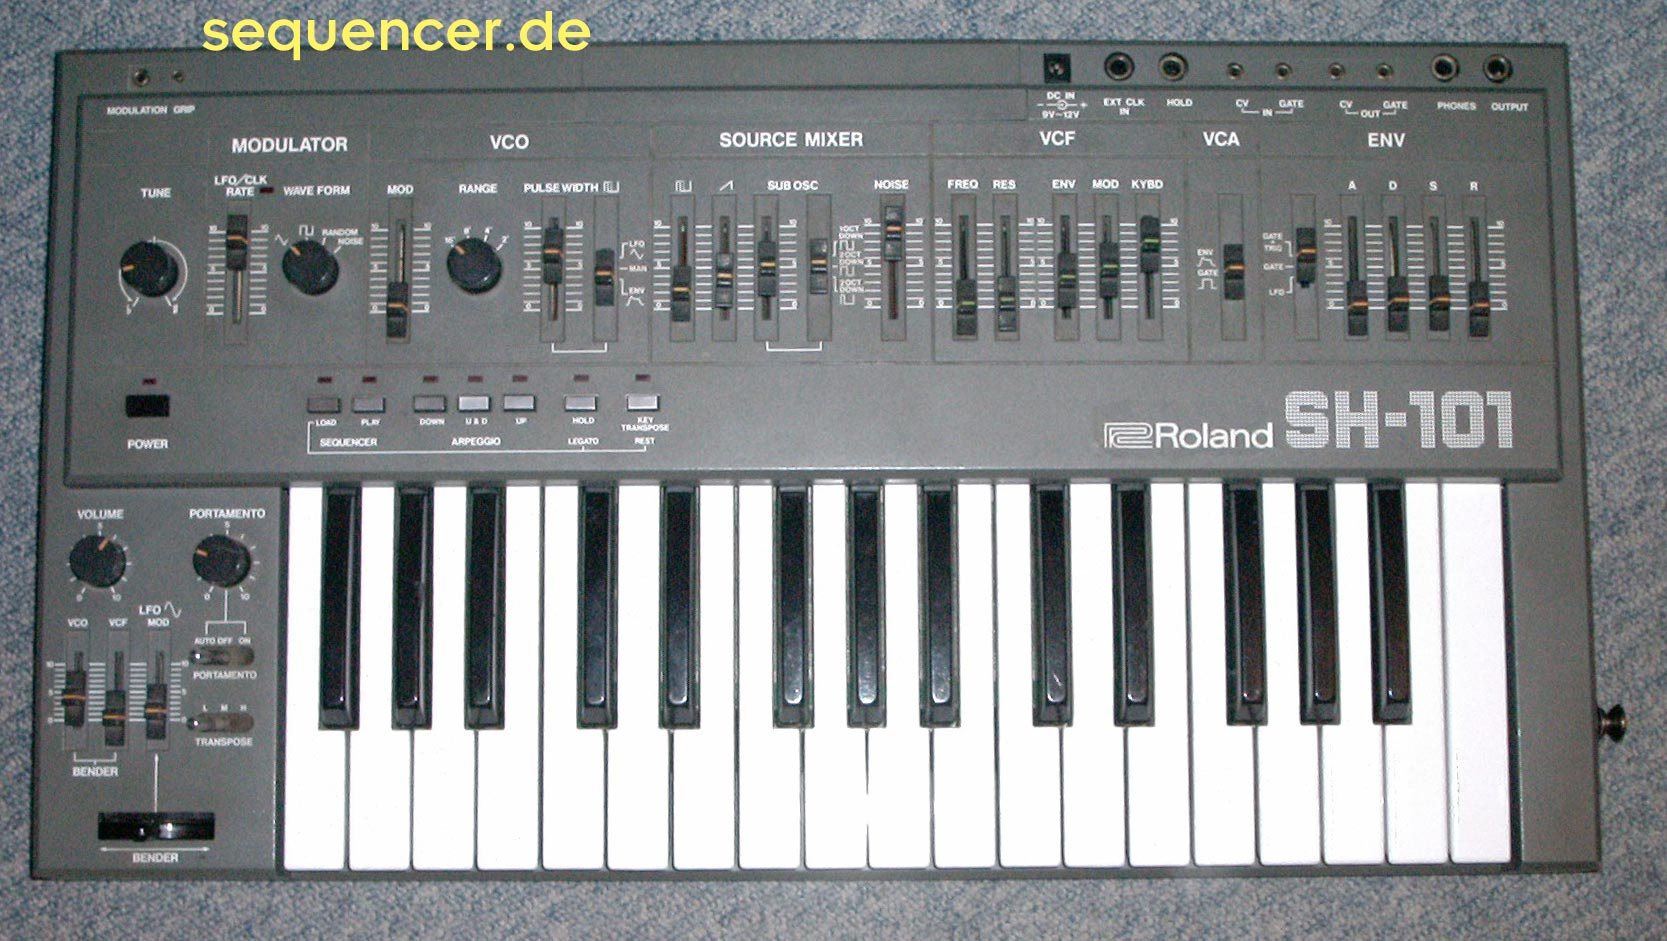 Roland SH-101 Sh-101 synthesizer